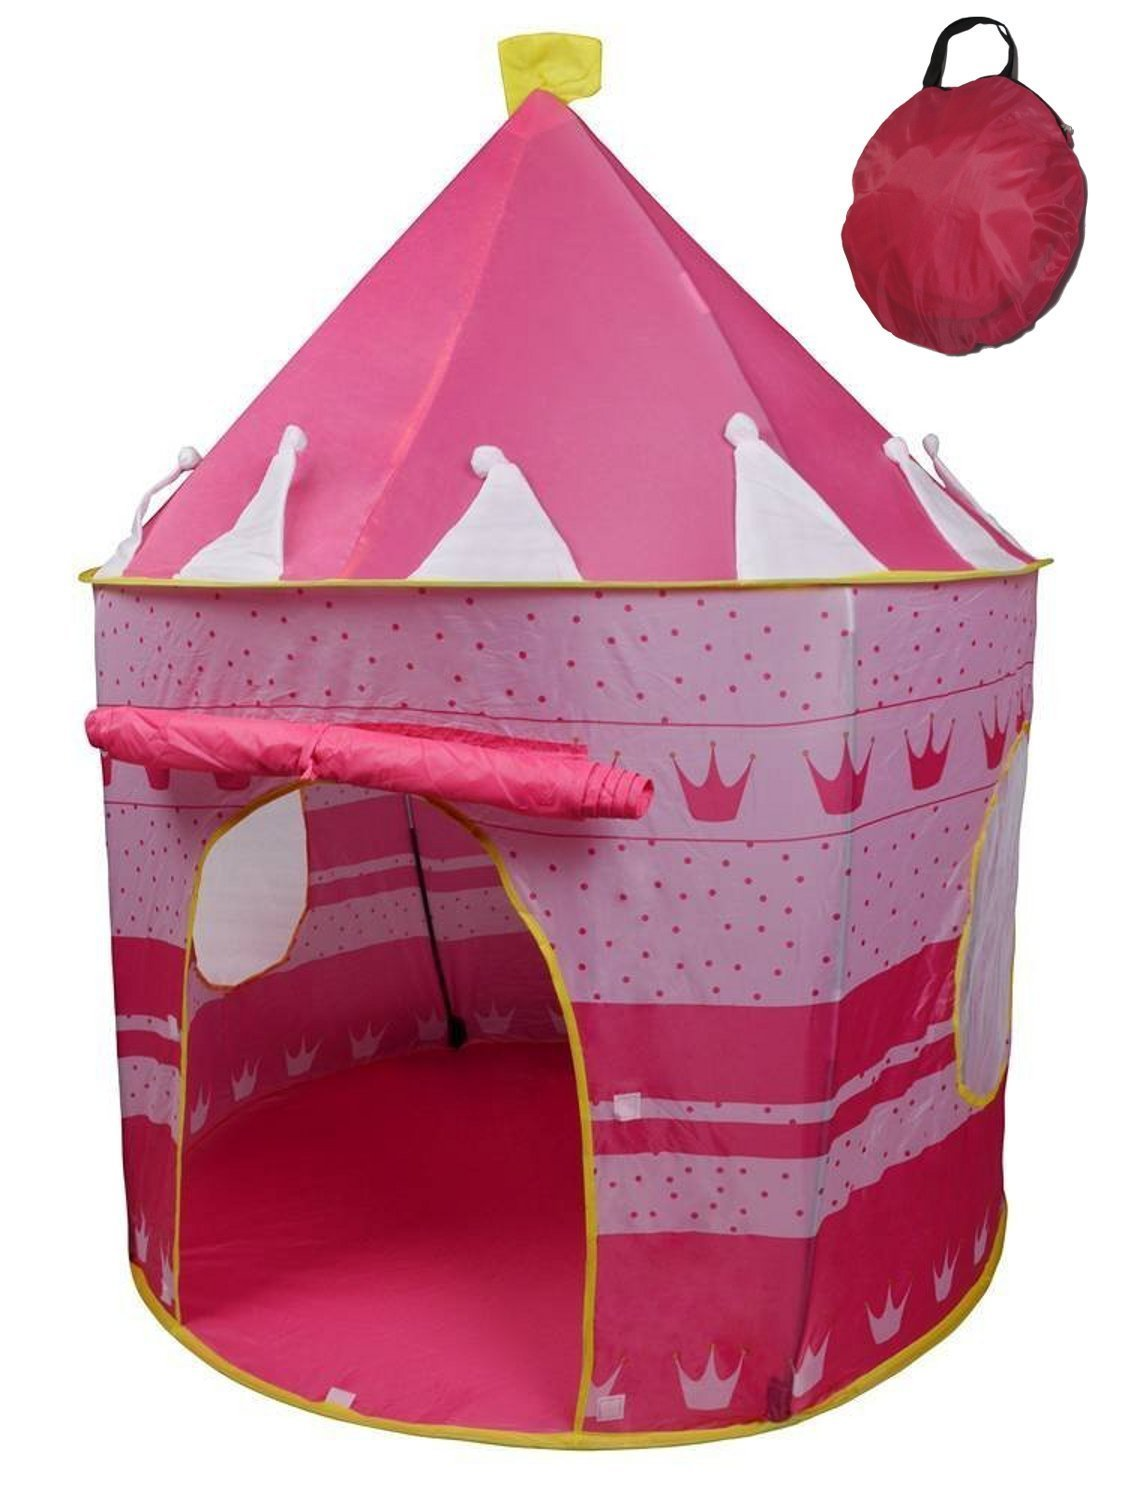 POCO DIVO Crown Princess Castle Girls Outdoor Tent Pink Indoor Play House  sc 1 st  Walmart & Play Tents - Walmart.com